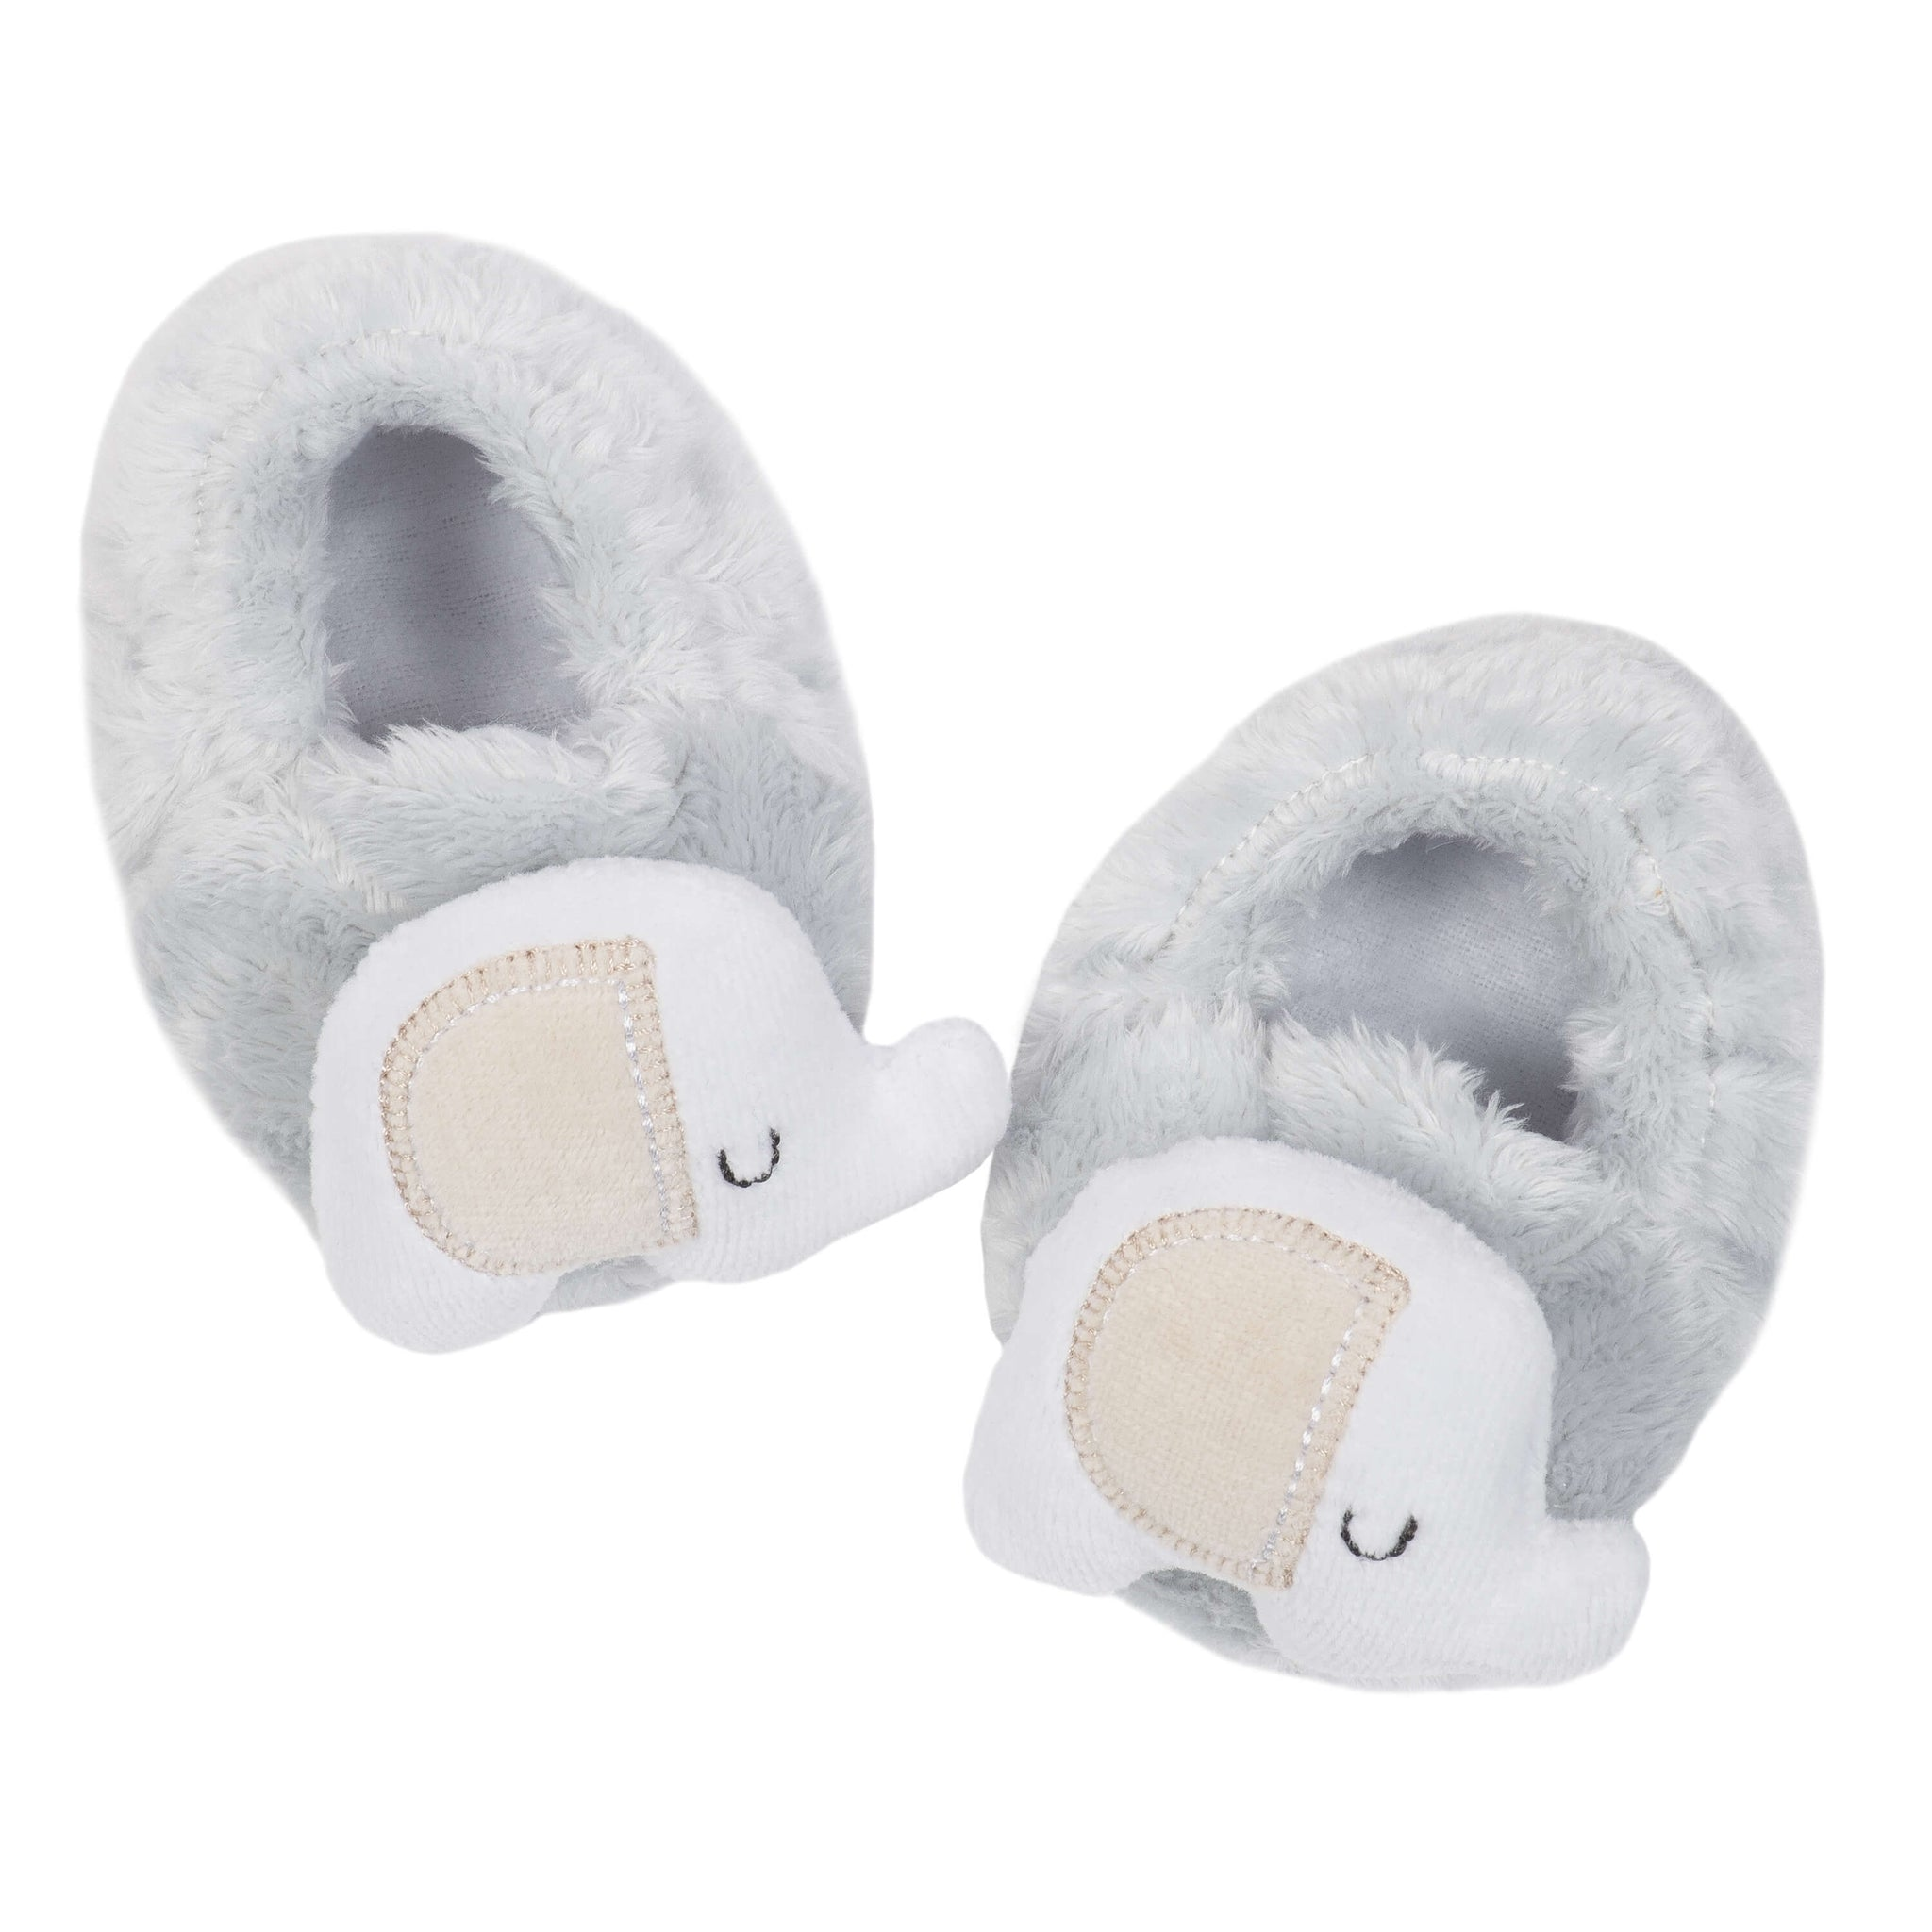 1-Pack Neutral Elephant Velboa Booties-Gerber Childrenswear